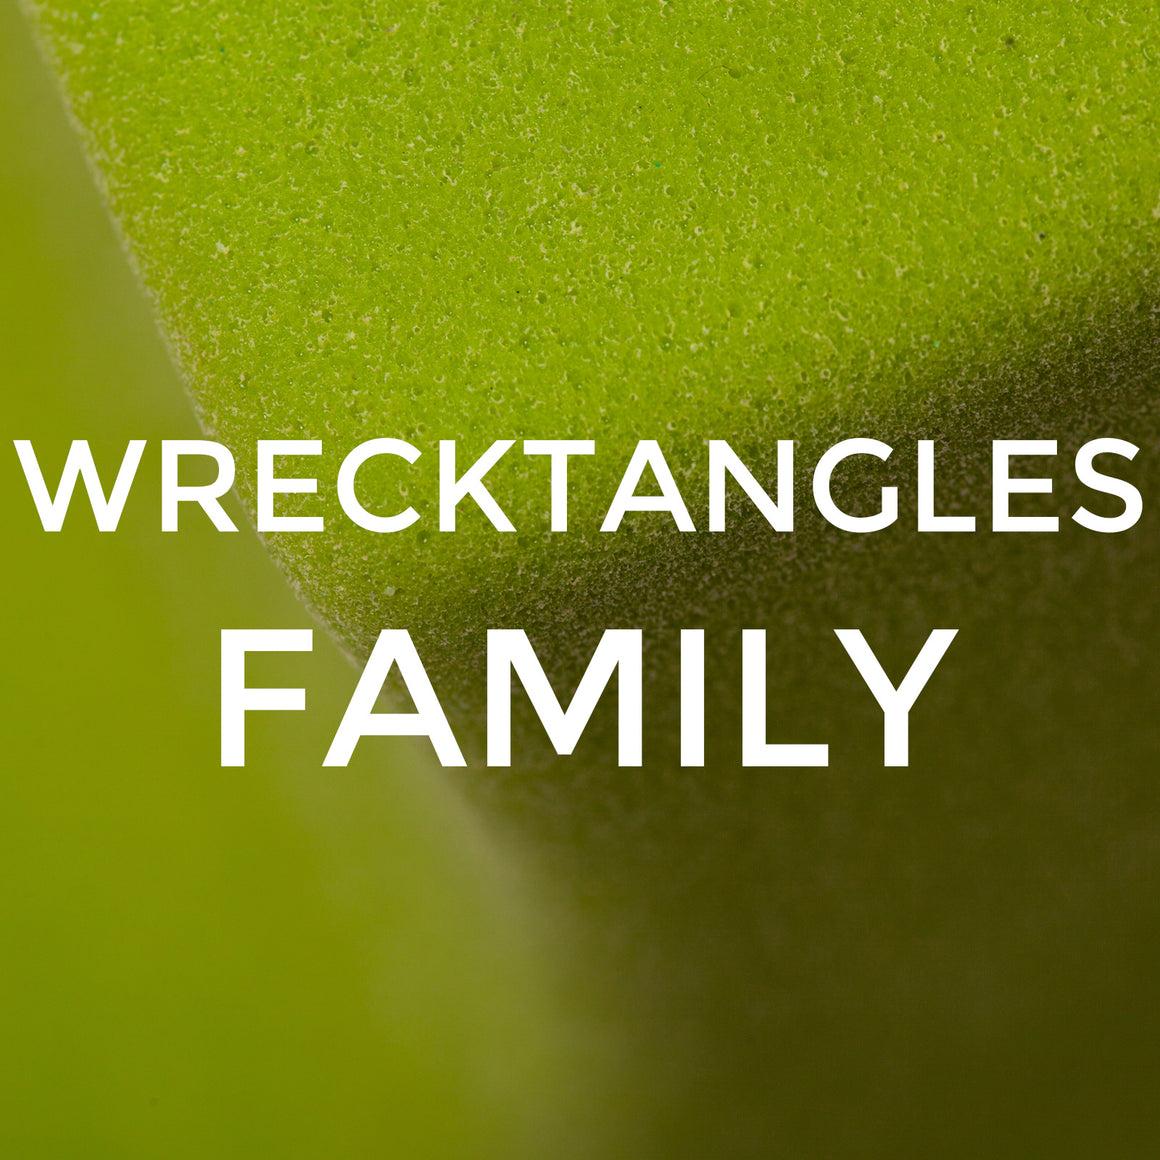 Wrecktangles Family